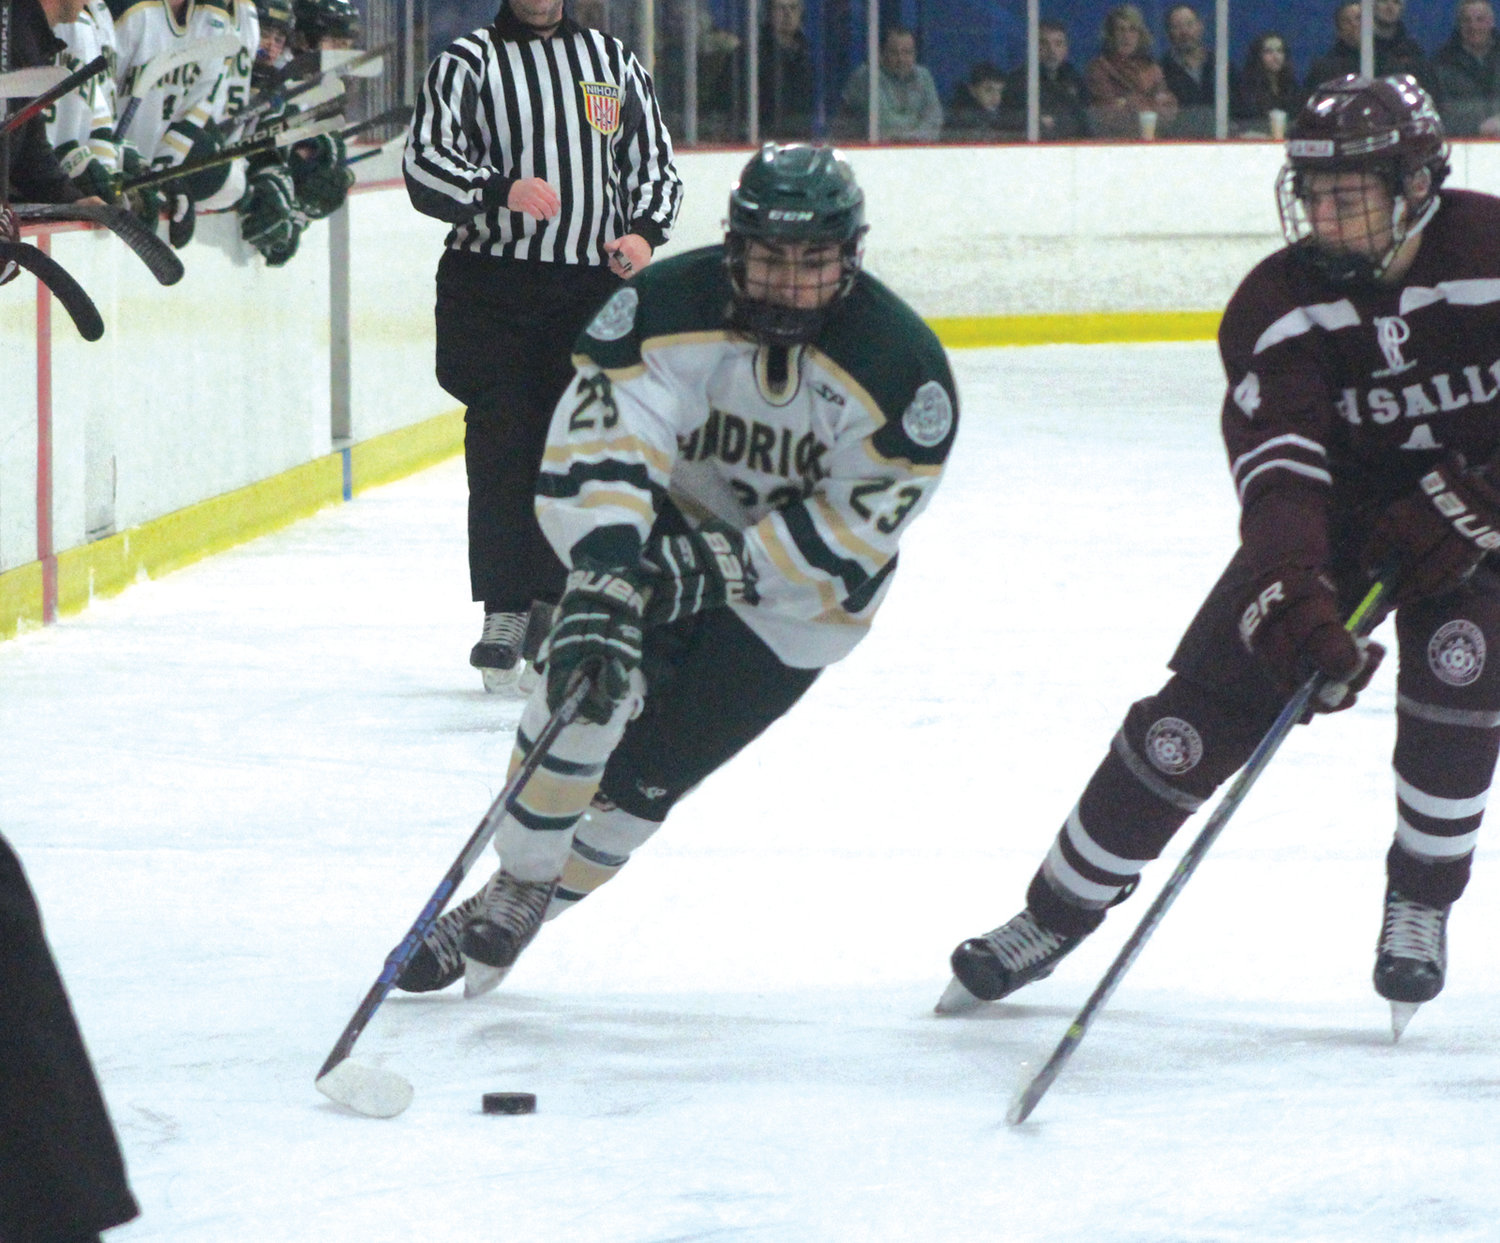 CARRYING THE PUCK: Bishop Hendricken's Matthew Dumond works his way past a La Salle defender last week during the teams' matchup at the Thayer Arena in Warwick. The two clubs would battle to a 4-4 tie on the night, and are likely to square off again in the postseason.